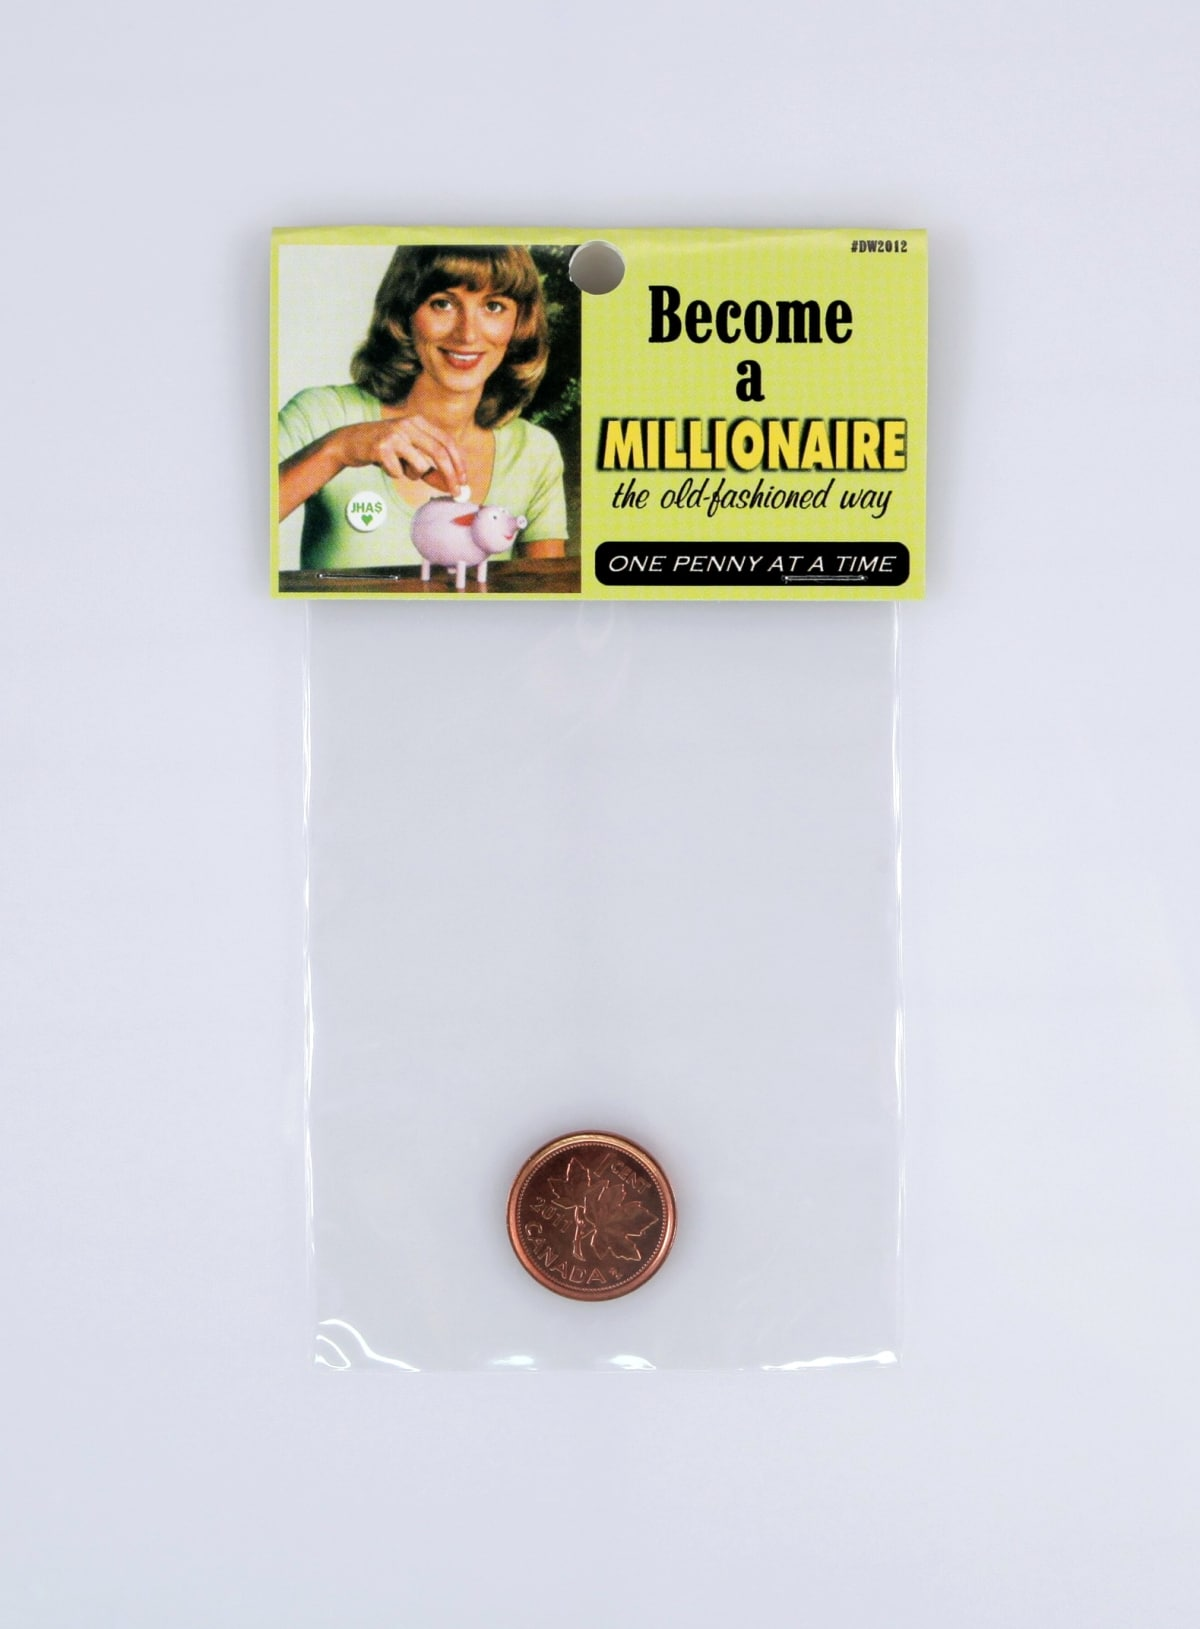 Become a millionaire the old fashioned way